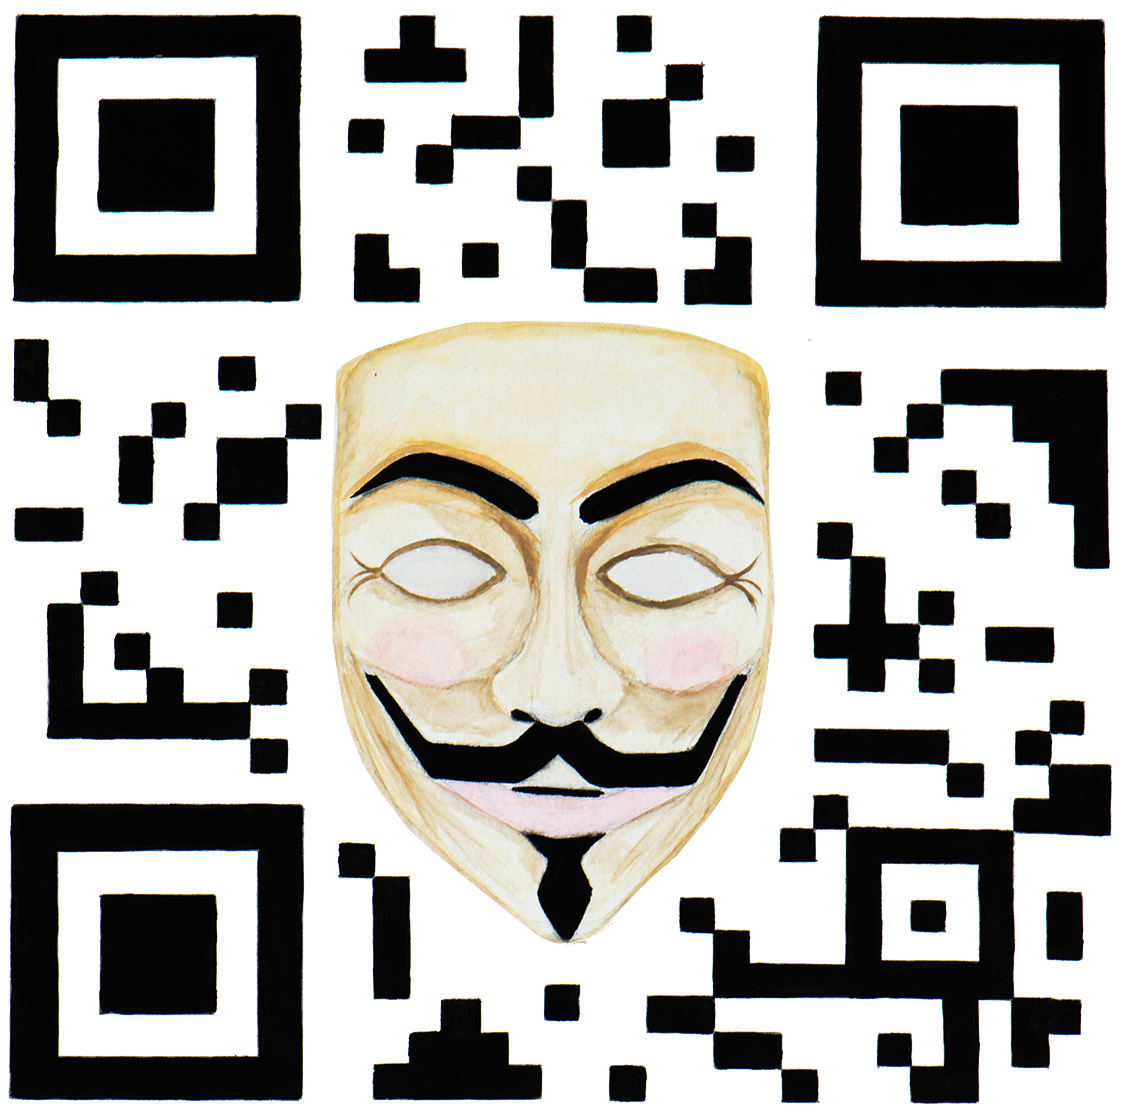 QR Code illustration with Guy Fawkes mask